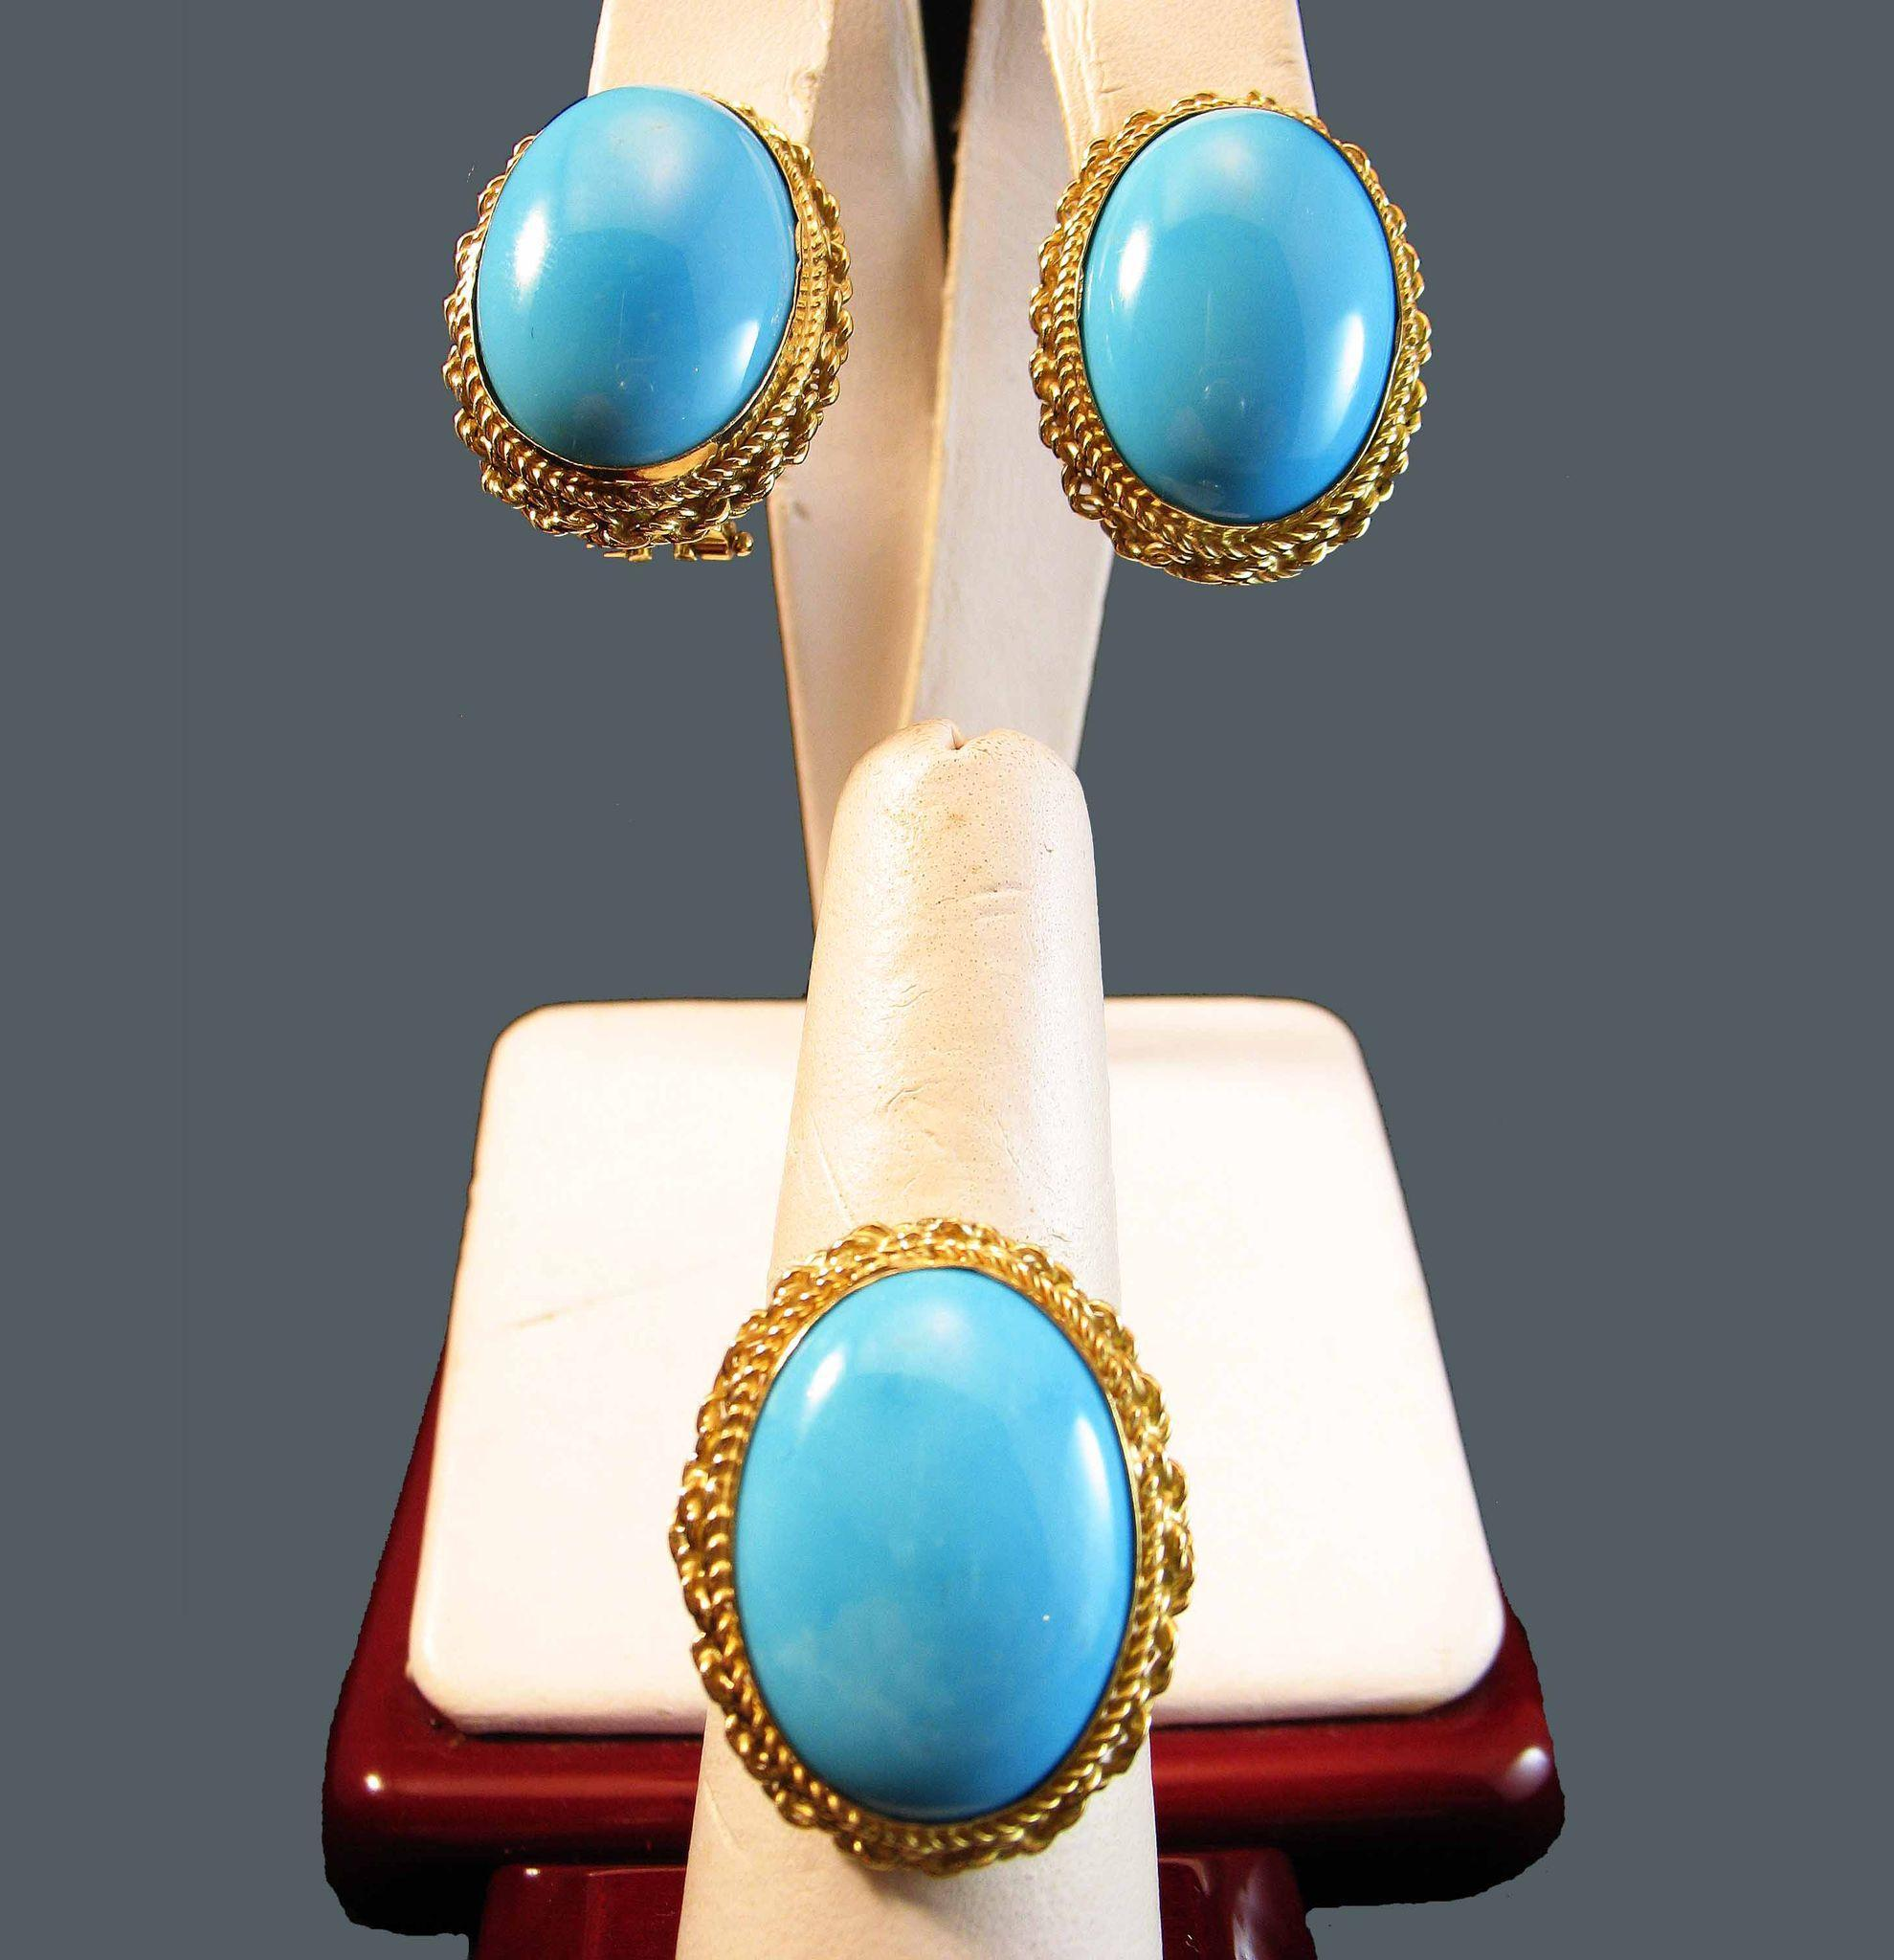 Oh So Elegant 18k Sleeping Beauty Turquoise Large Cabochon Ring & 18k  Earring Suite 252 Grams